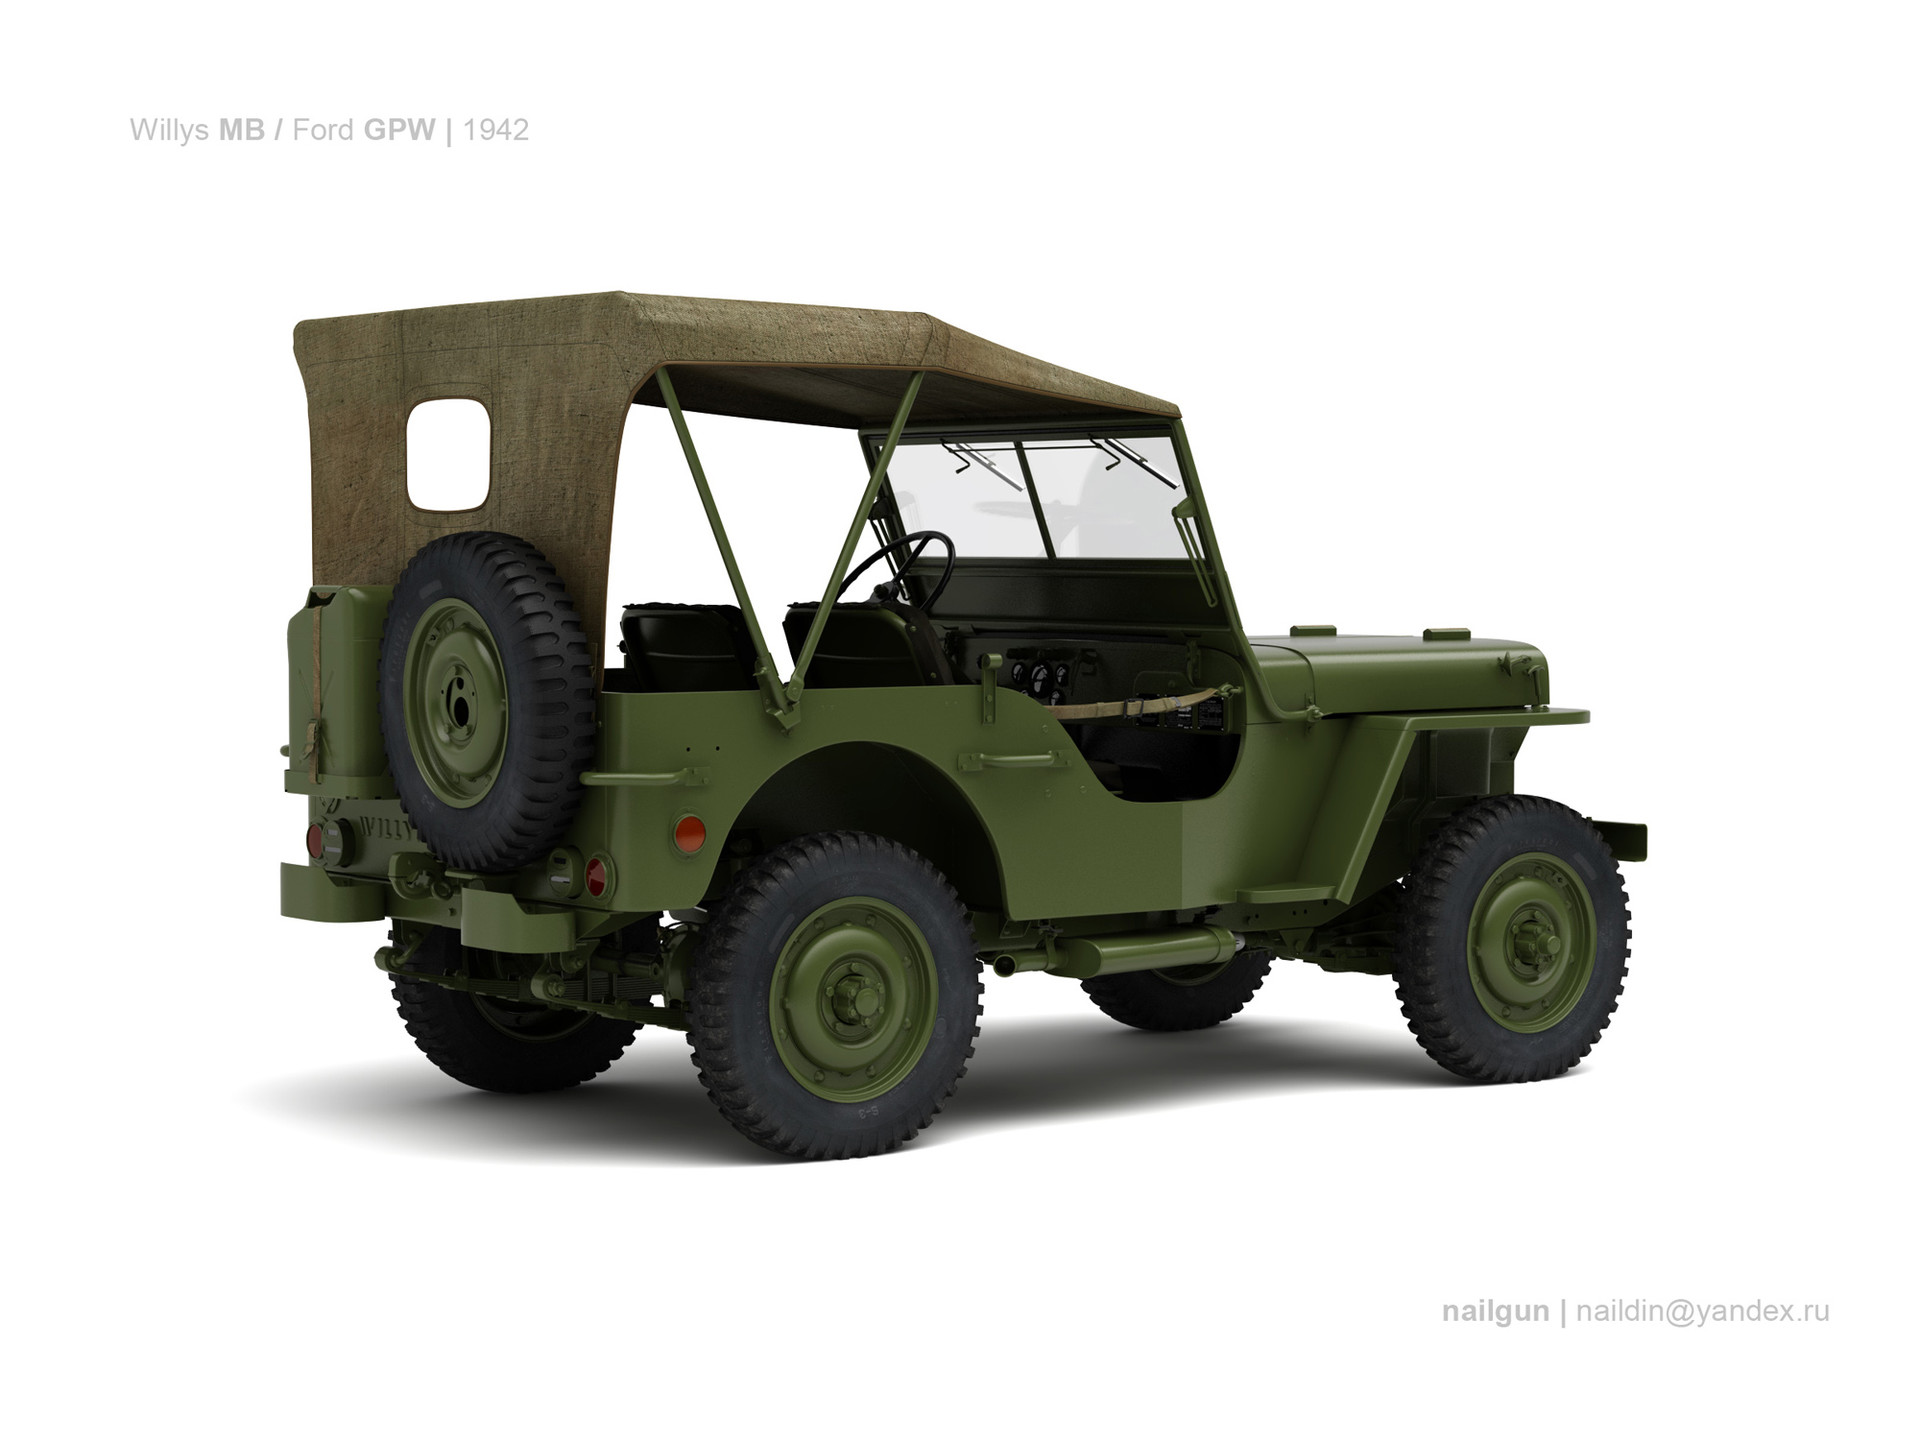 Nail khusnutdinov usa willys mb ford gpw 1